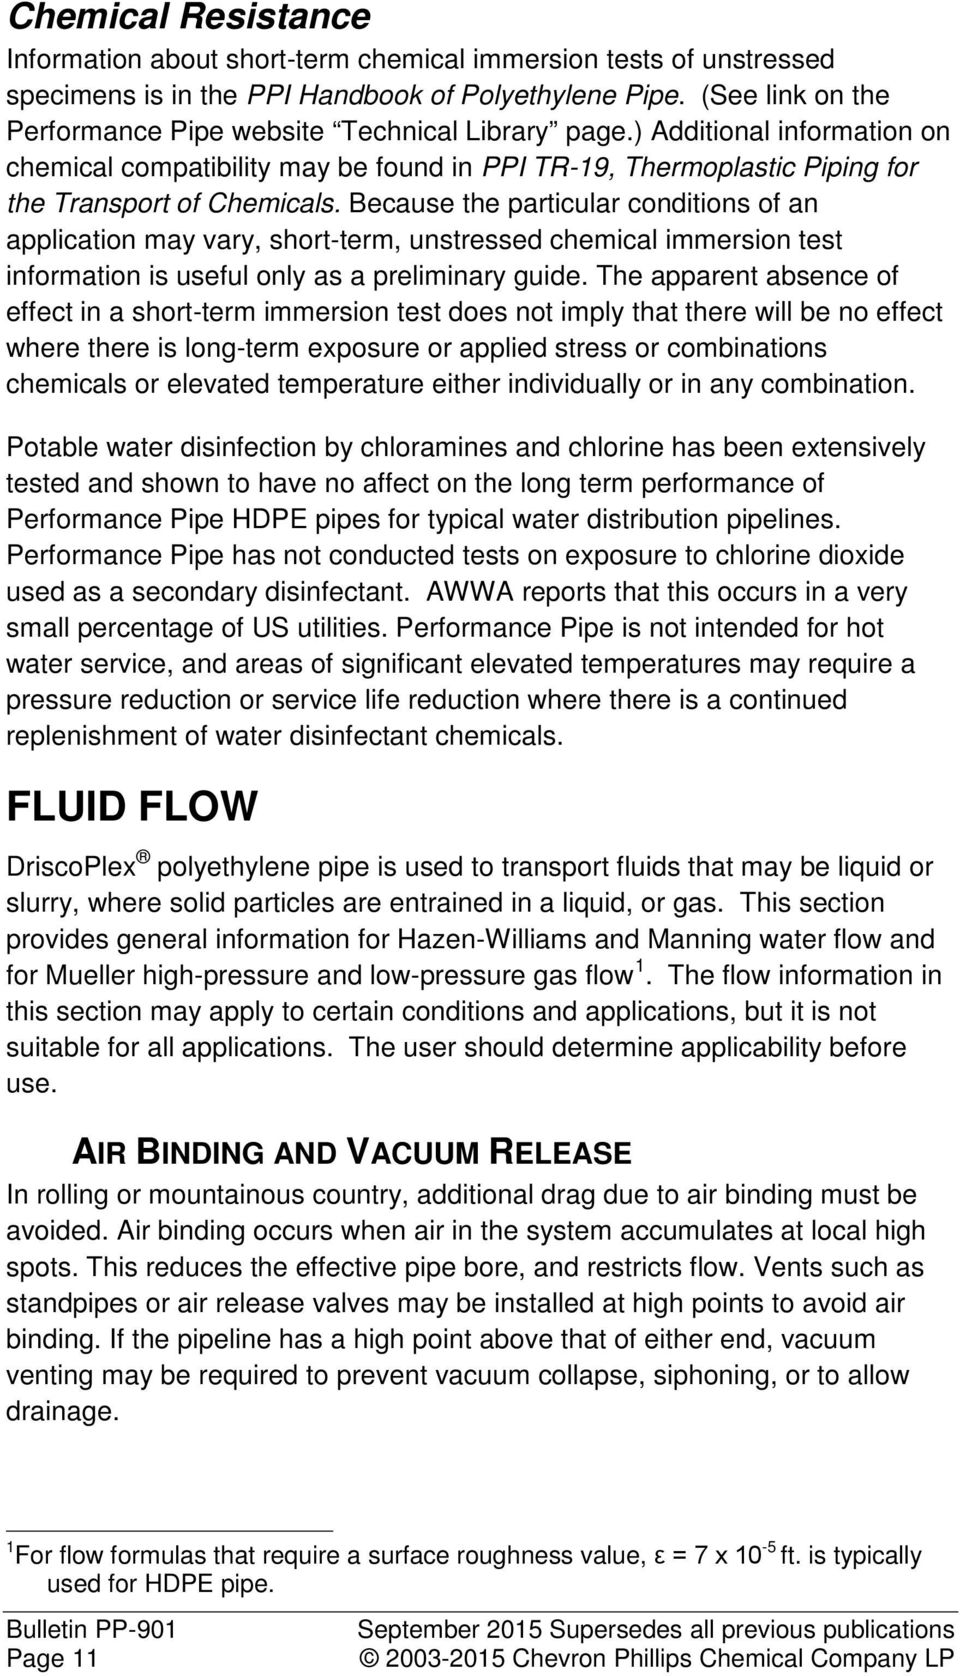 The Performance Pipe Field Handbook - PDF